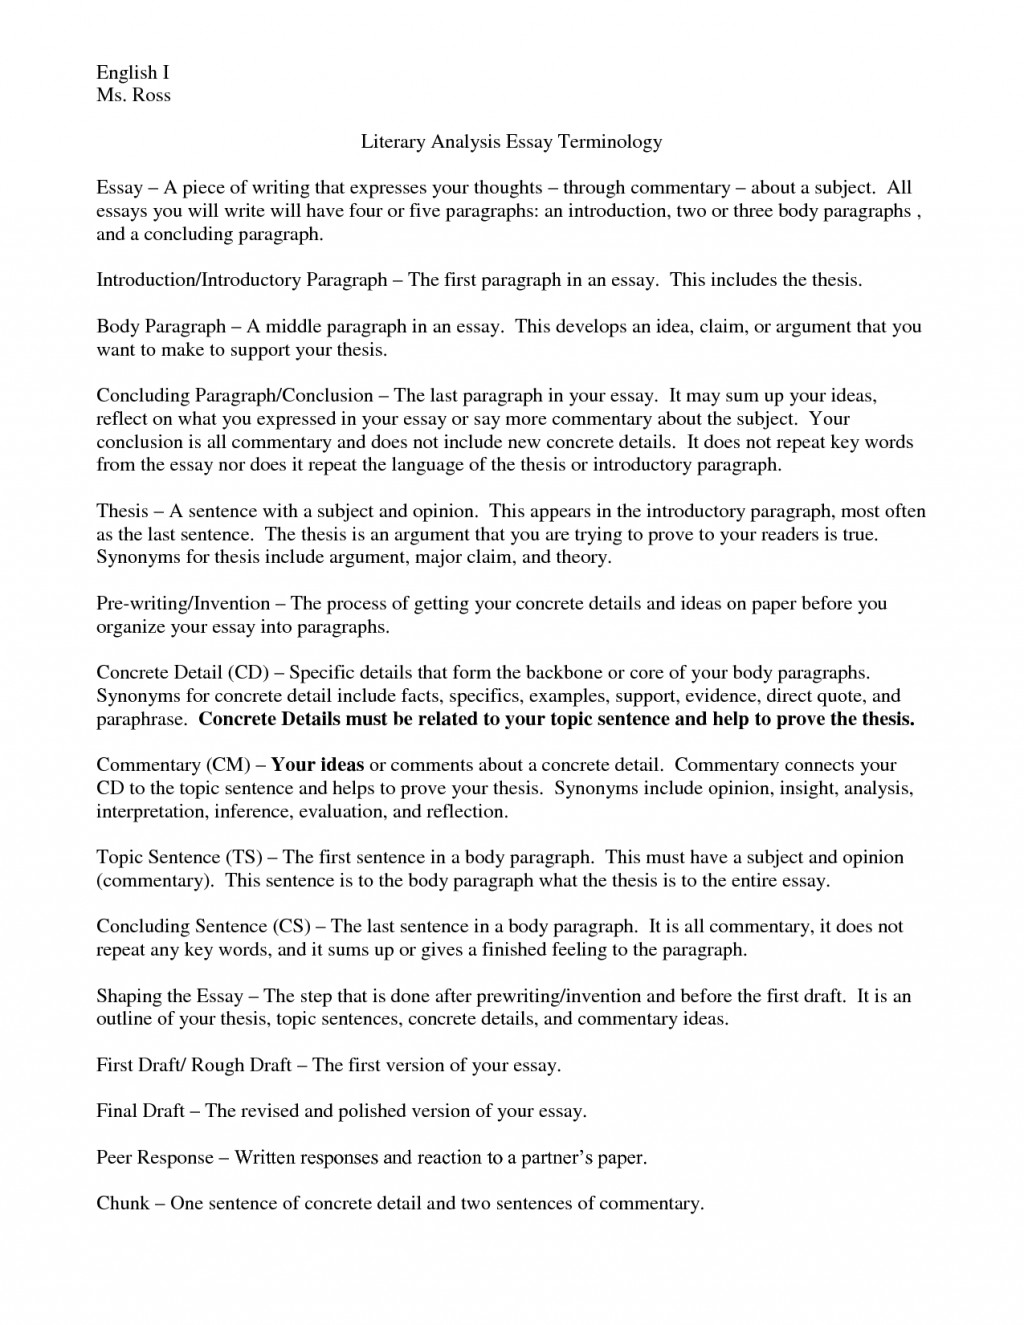 005 Literary Criticism Essay Example Excellent On The Great Gatsby Ideas Conclusion Sample Large